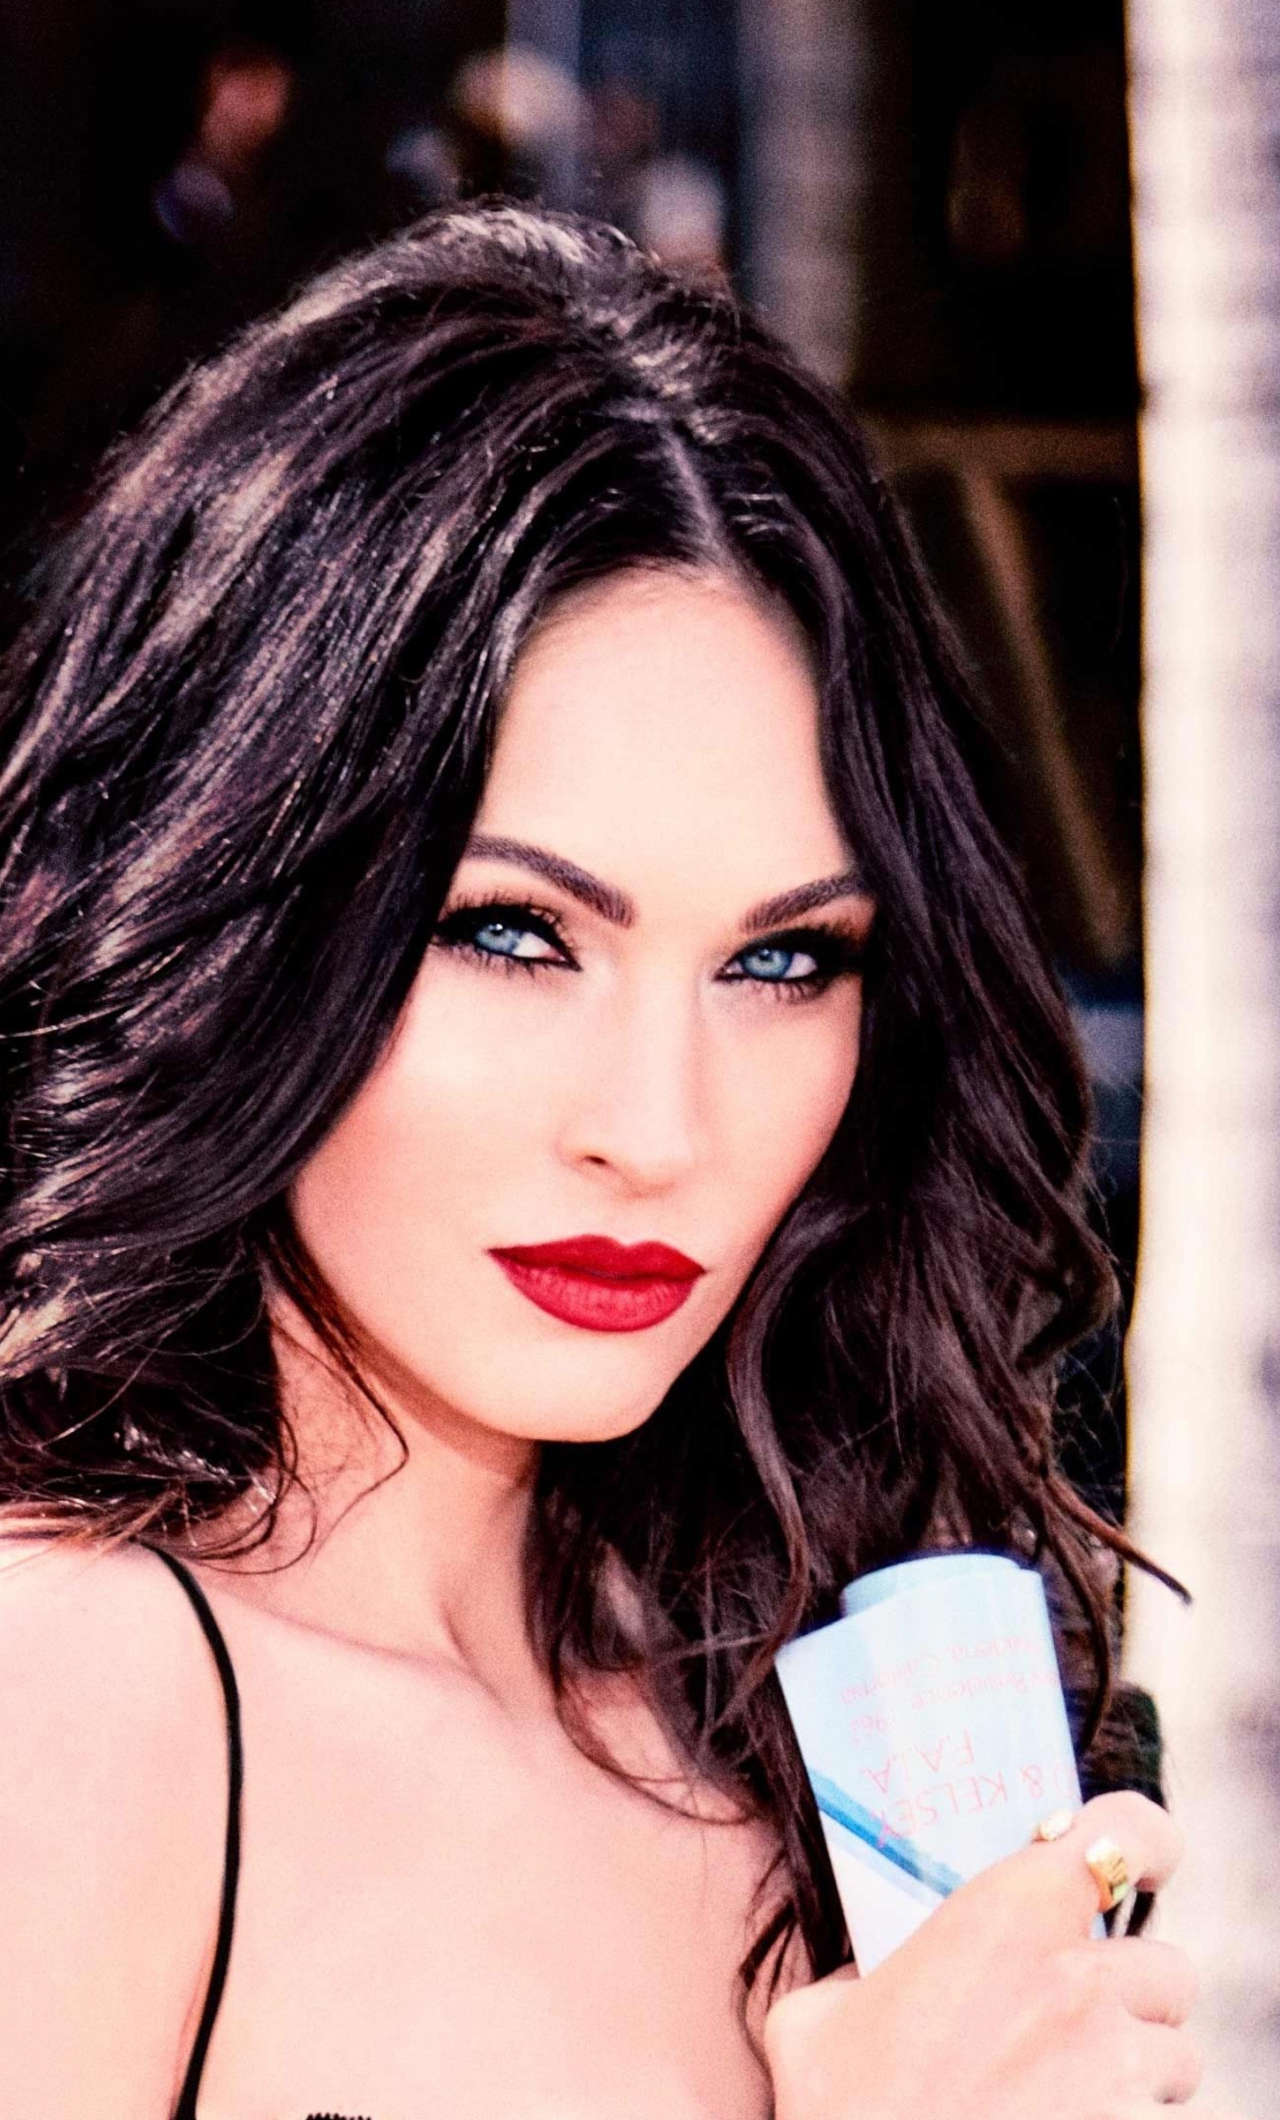 Download 1280x2120 Wallpaper Megan Fox Red Lips Actress Pretty 2019 Iphone 6 Plus 1280x2120 Hd Image Background 18442